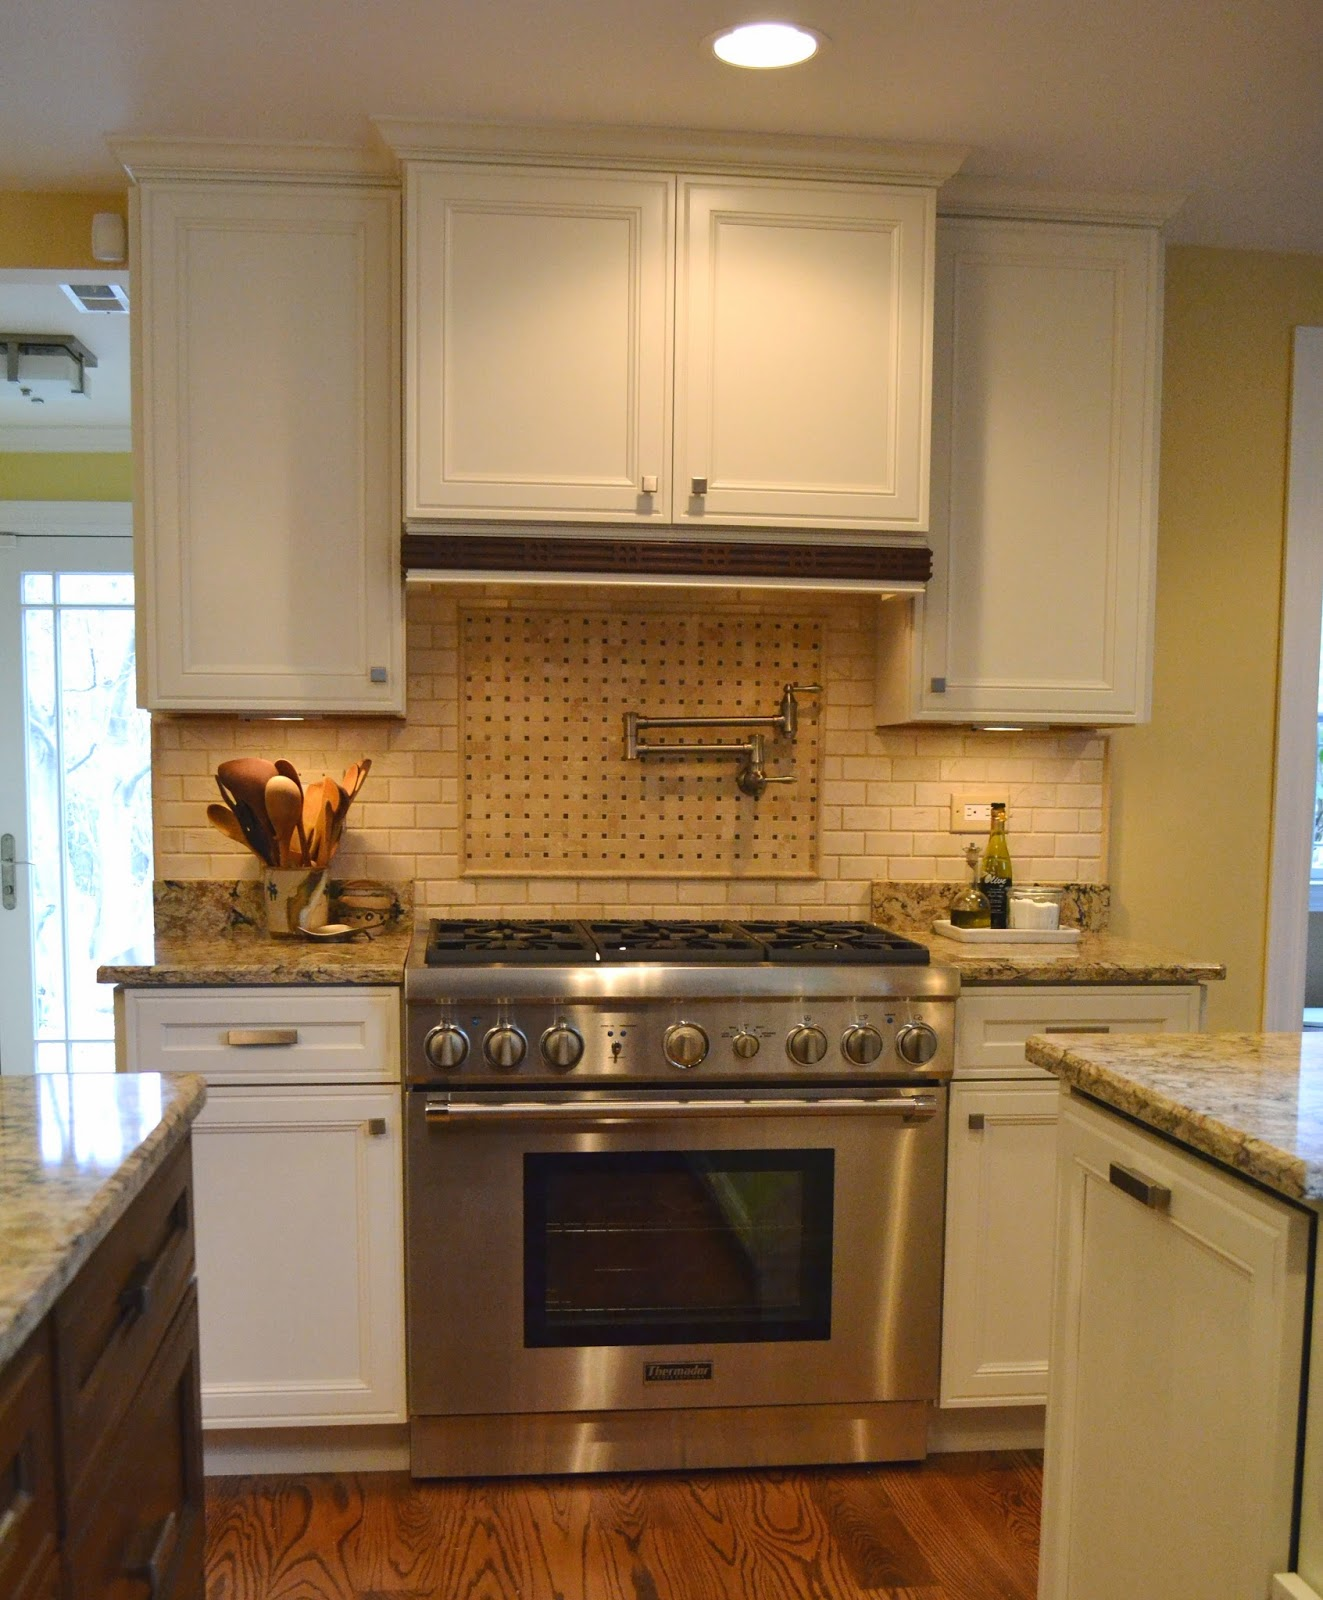 Kitchen Remodel Youngstown Oh: Kitchen Design Insider: Kitchen Design: Where Oh Where